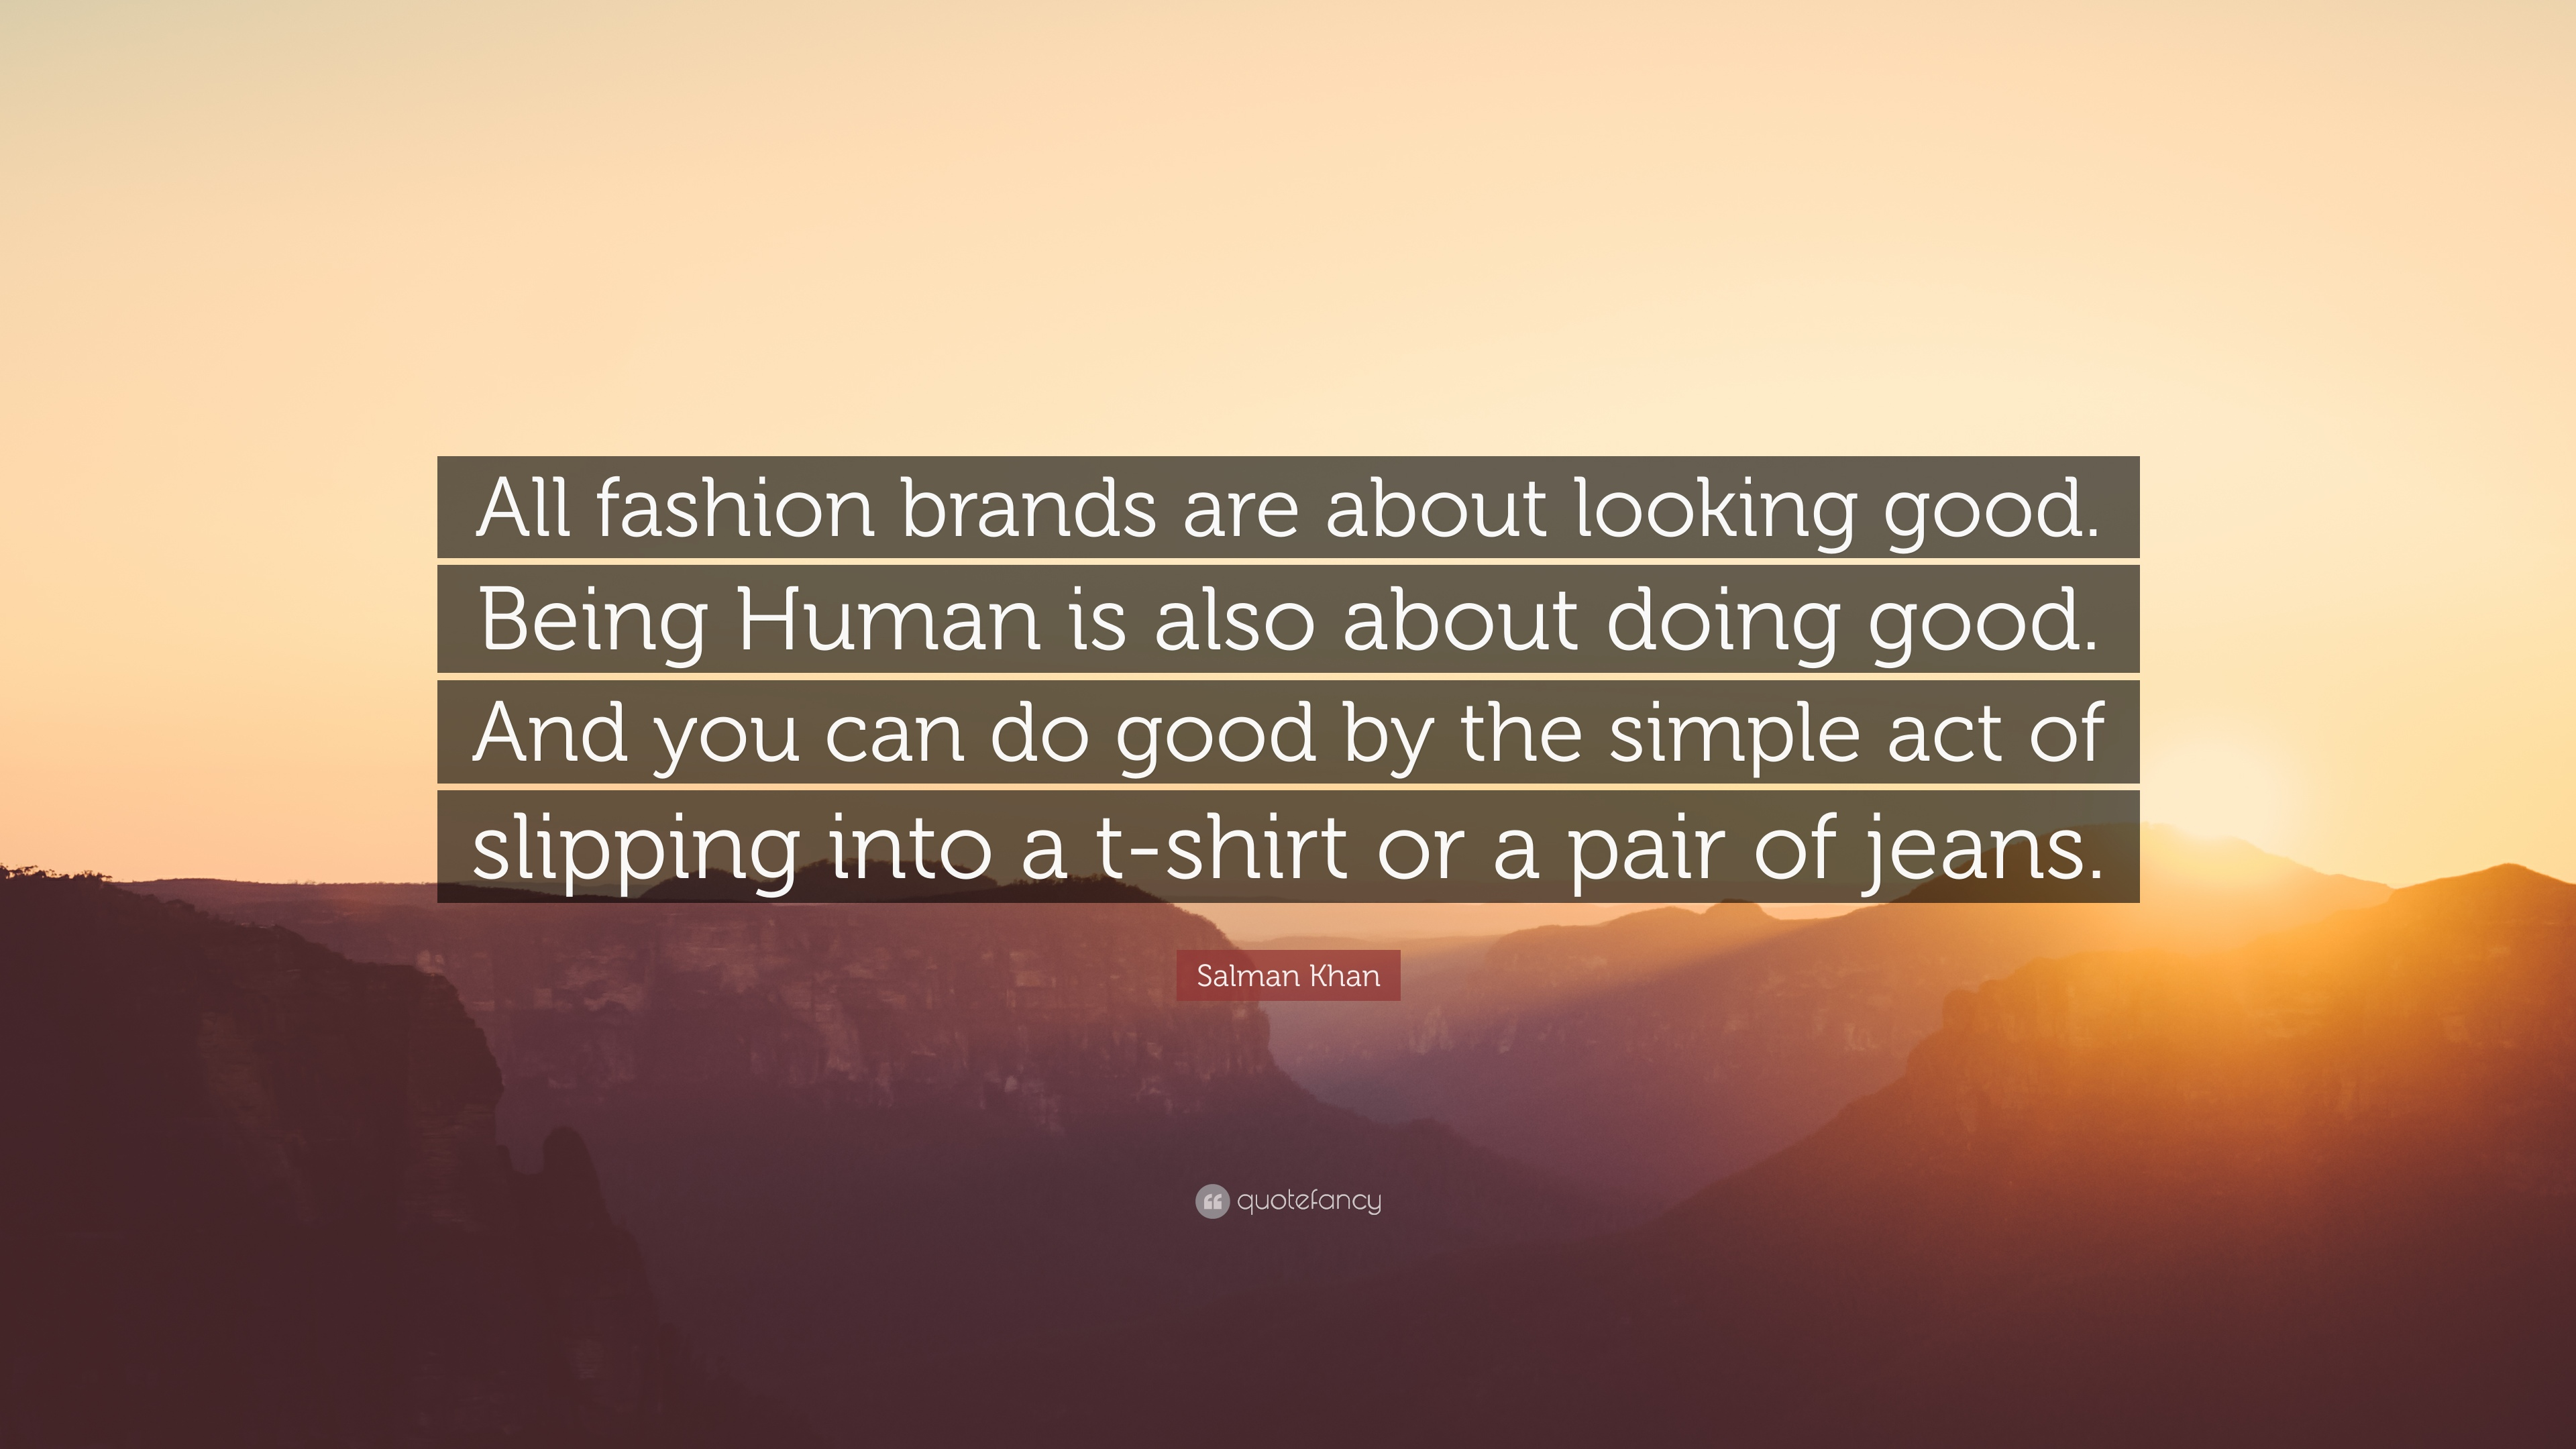 Salman Khan Quote All Fashion Brands Are About Looking Good Being Human Is Also About Doing Good And You Can Do Good By The Simple Act O 7 Wallpapers Quotefancy